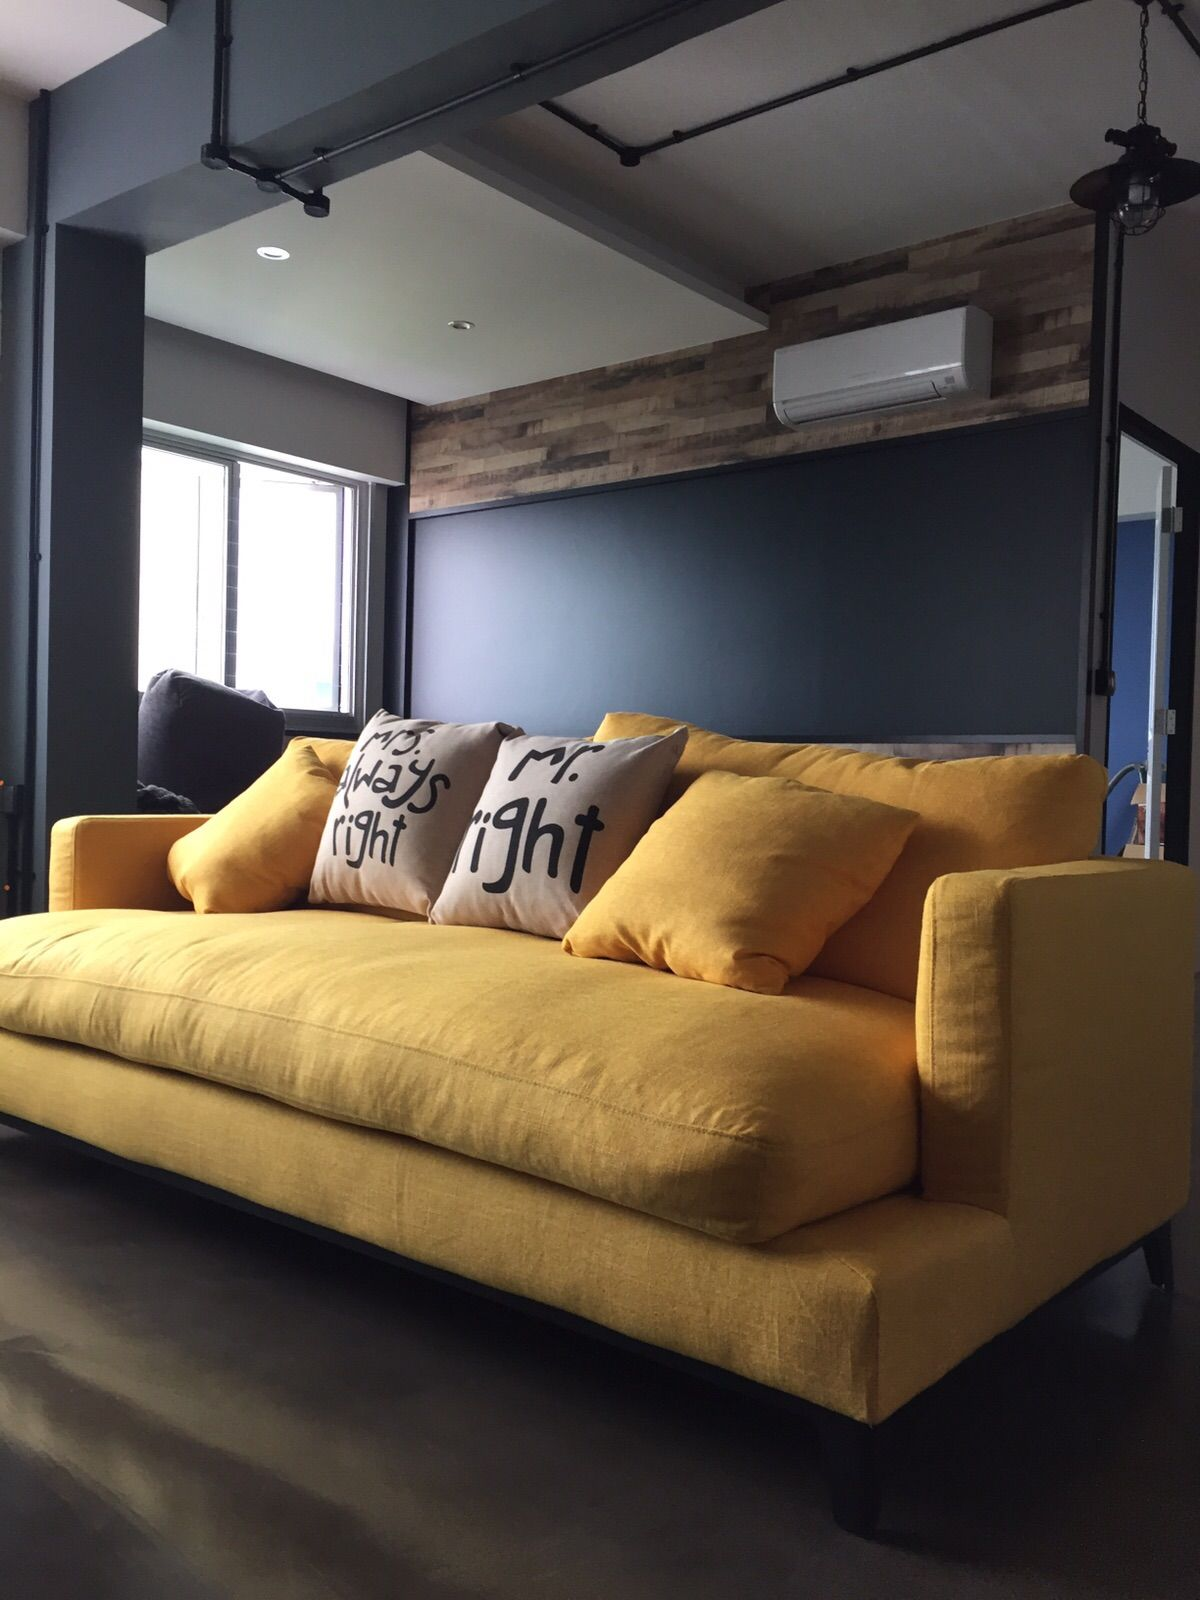 This One S For The Happy People Griffith All Decked Out In Yellow Smile Http Www Etchandbolts Com Sofa Gr Furniture Top Furniture Stores Custom Furniture